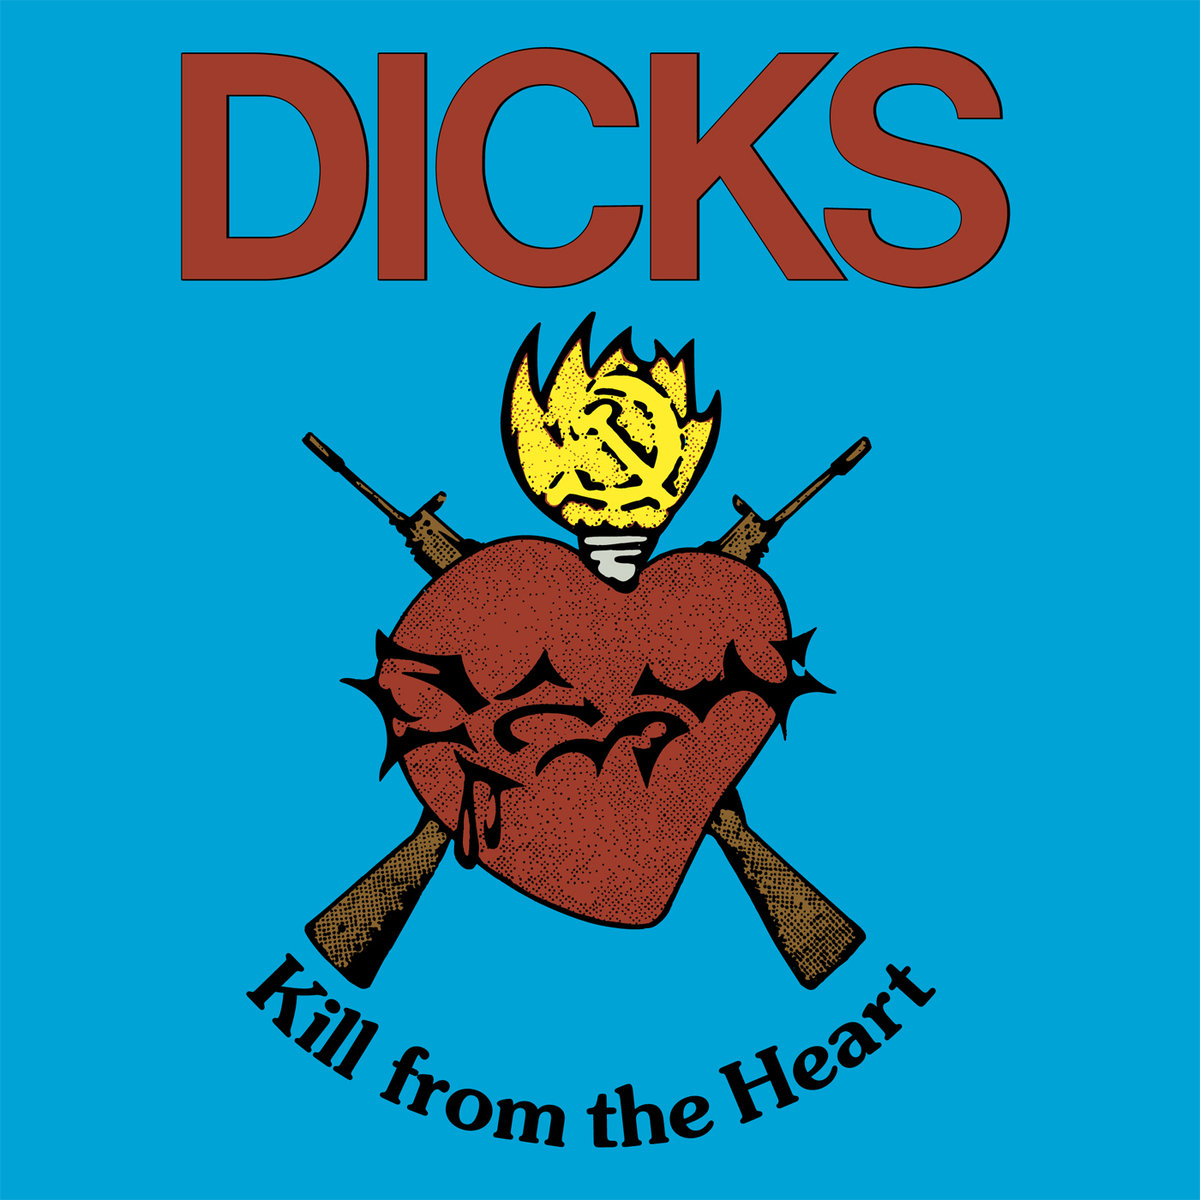 The Dicks Kill From the Heart